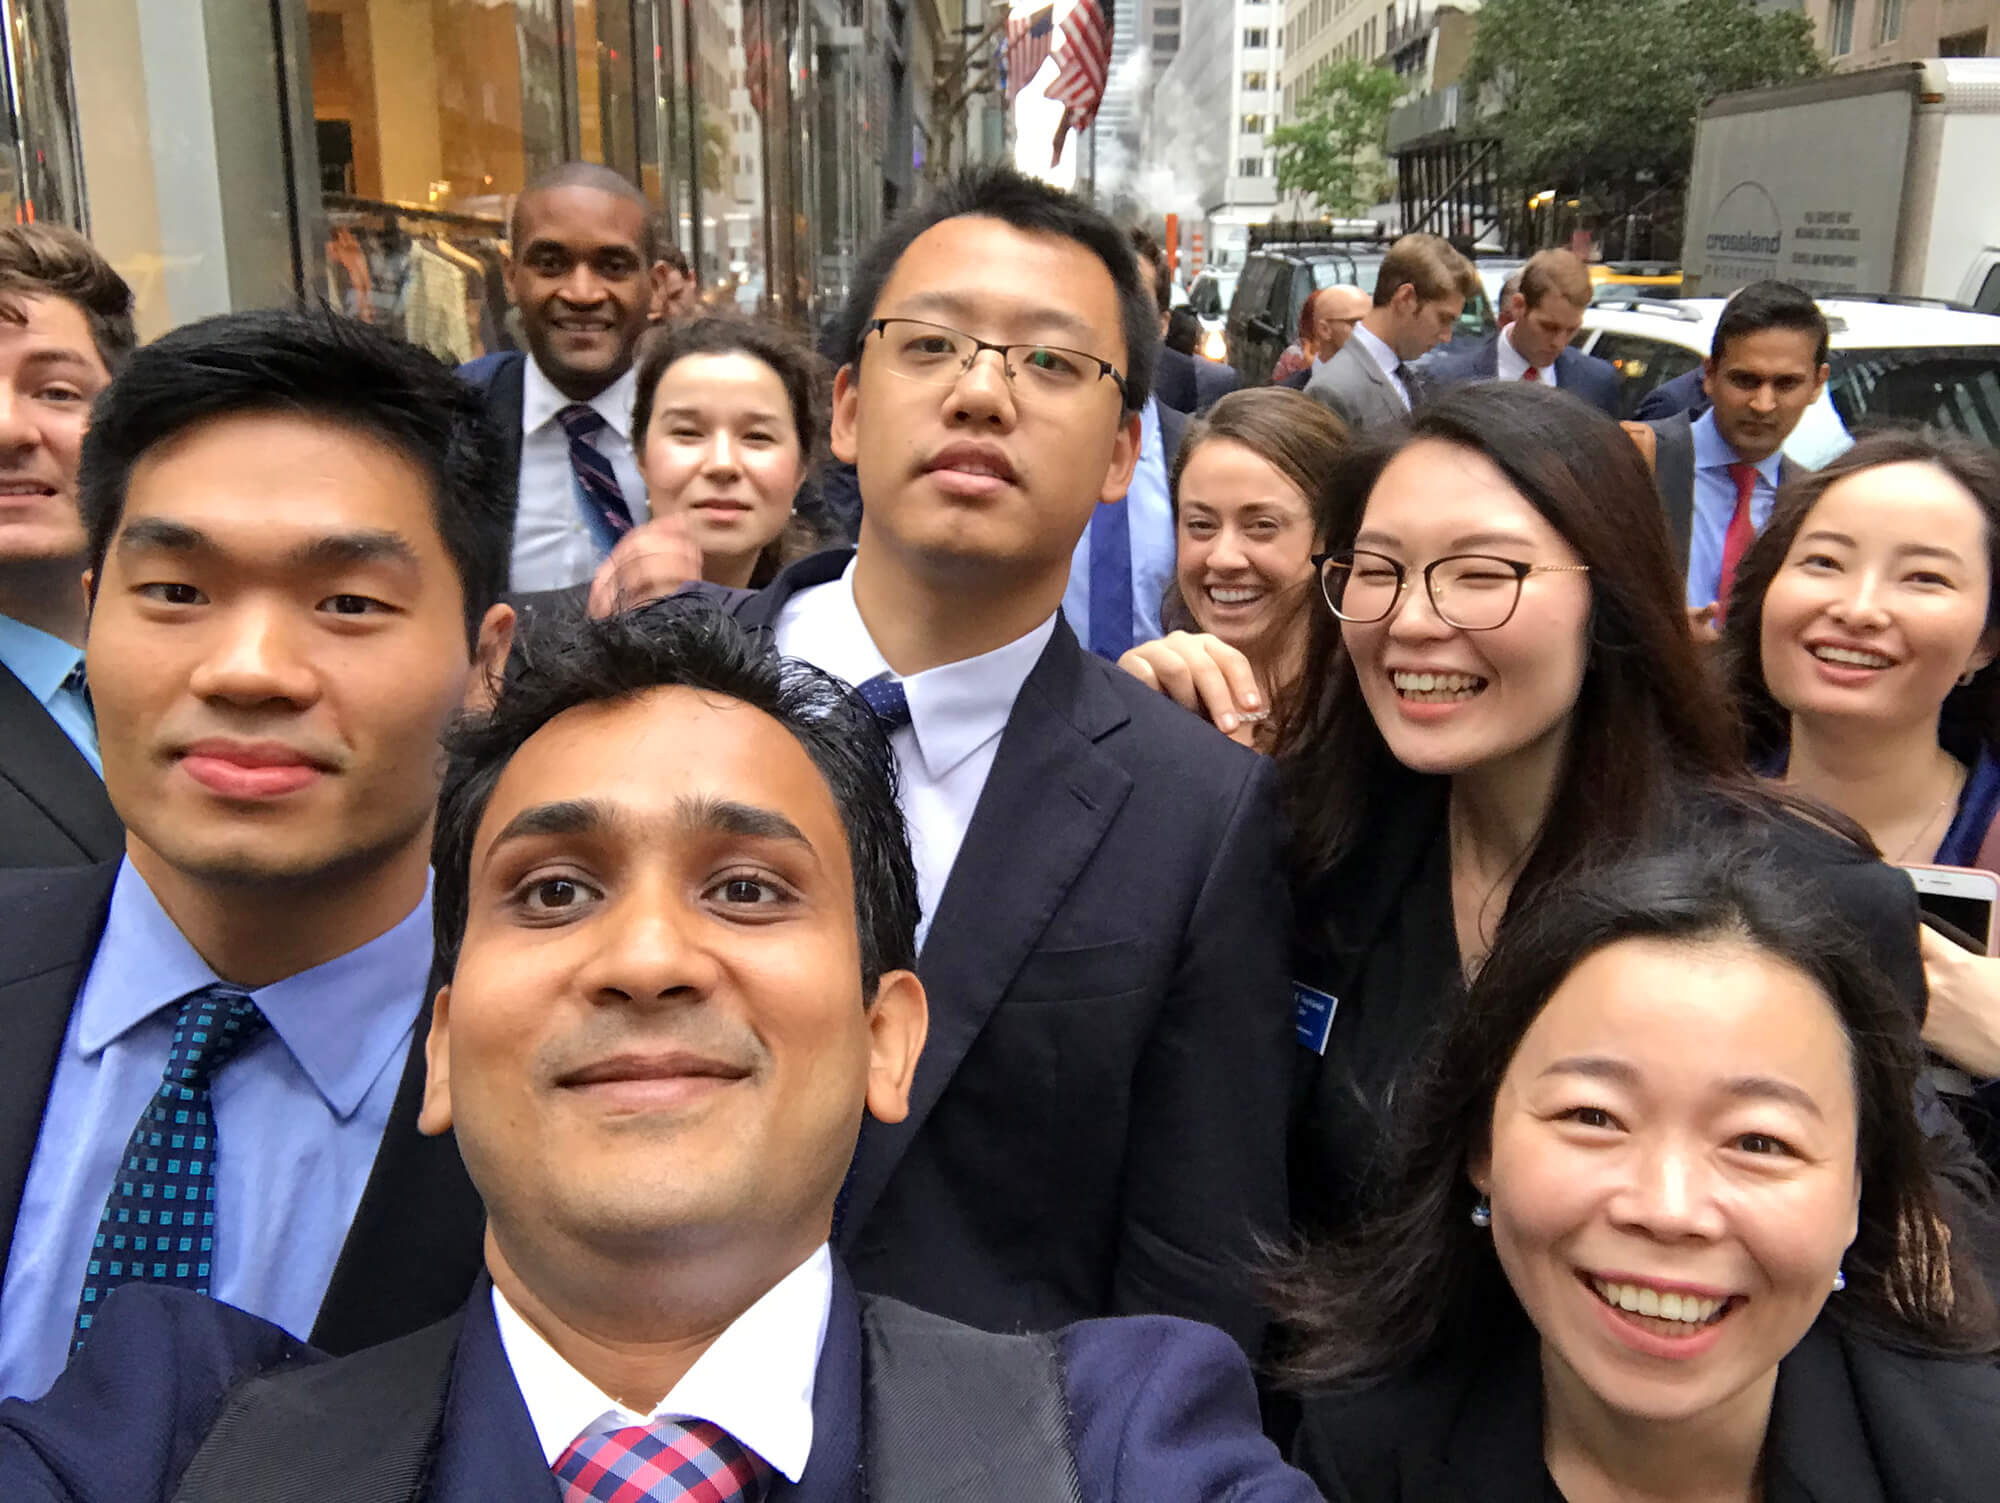 students in New York city for corporate visits and networking, part of life at a business school in the U.S.